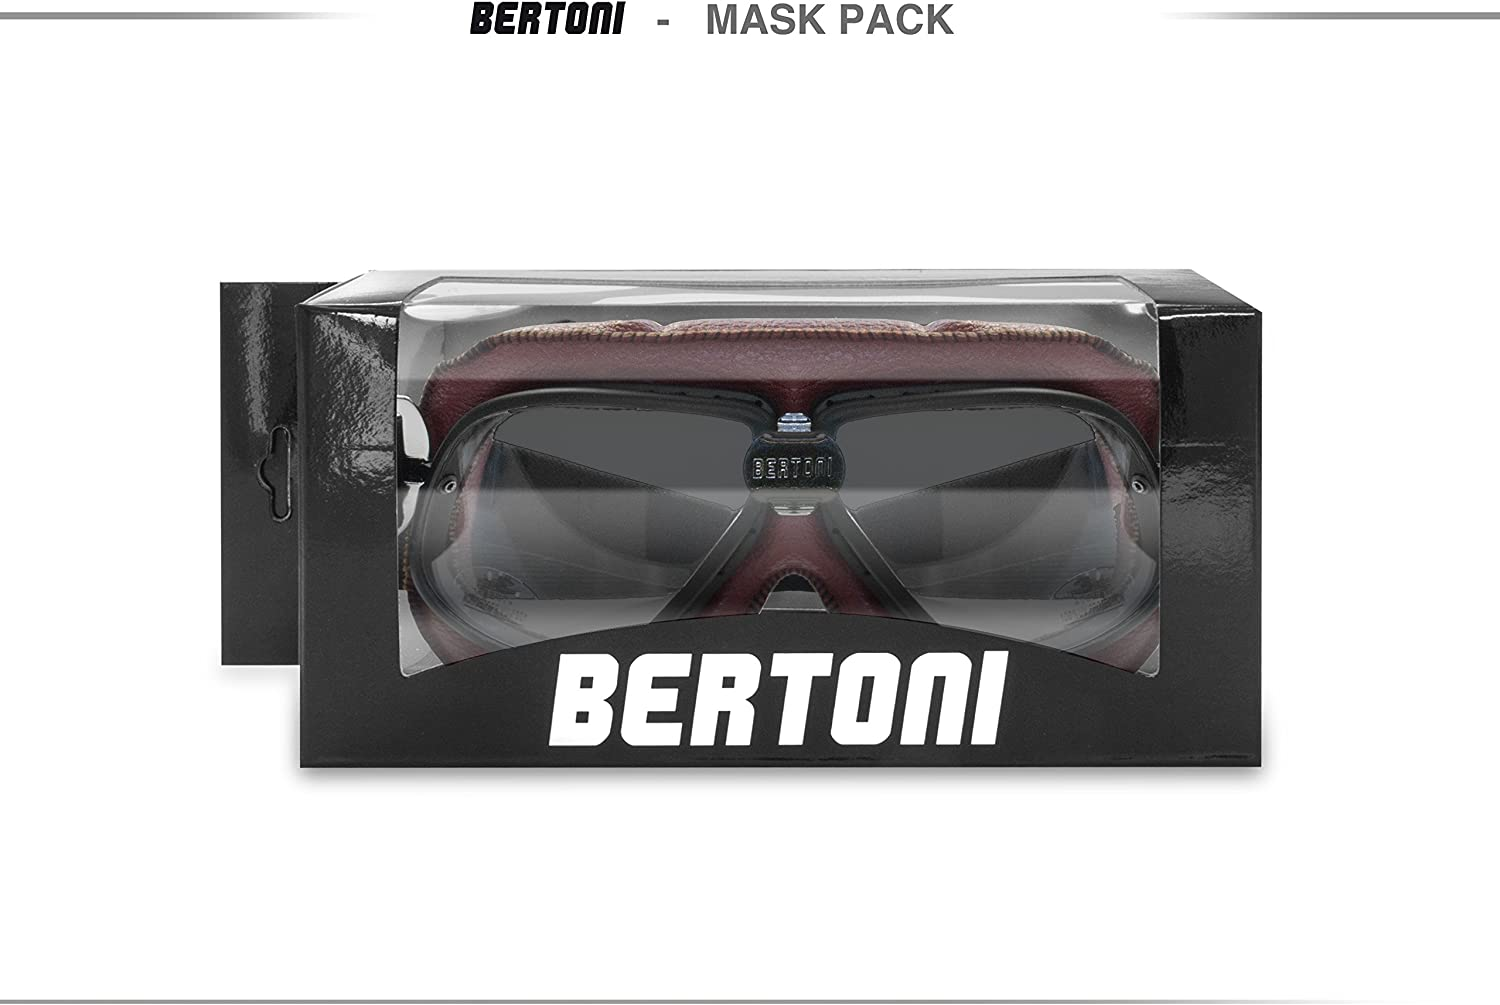 Bertoni Motorcycle Vintage Aviator Goggles in Red Leather w Mat Black Frame w Black Strap AF196R RED by Bertoni Italy Motorbike Riding Glasses